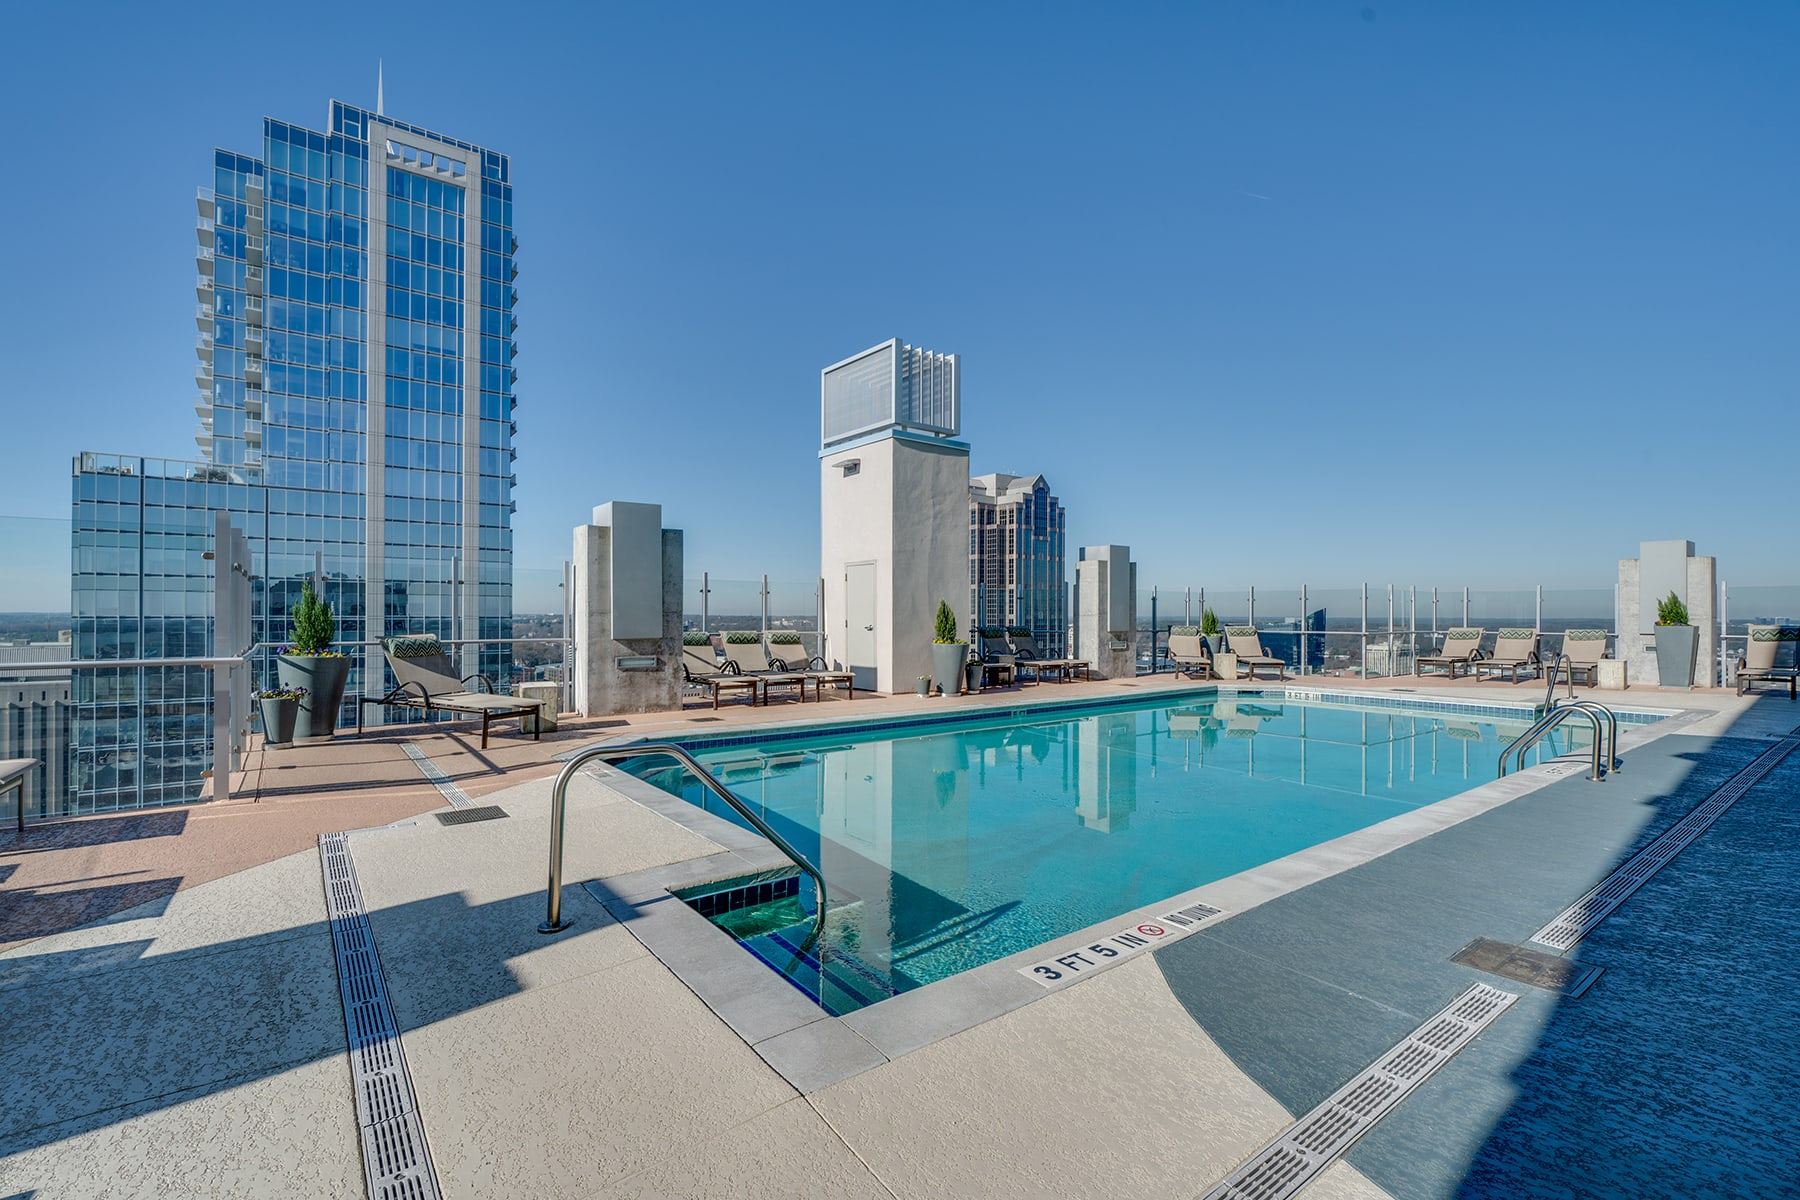 skyhouse pool with rooftop view